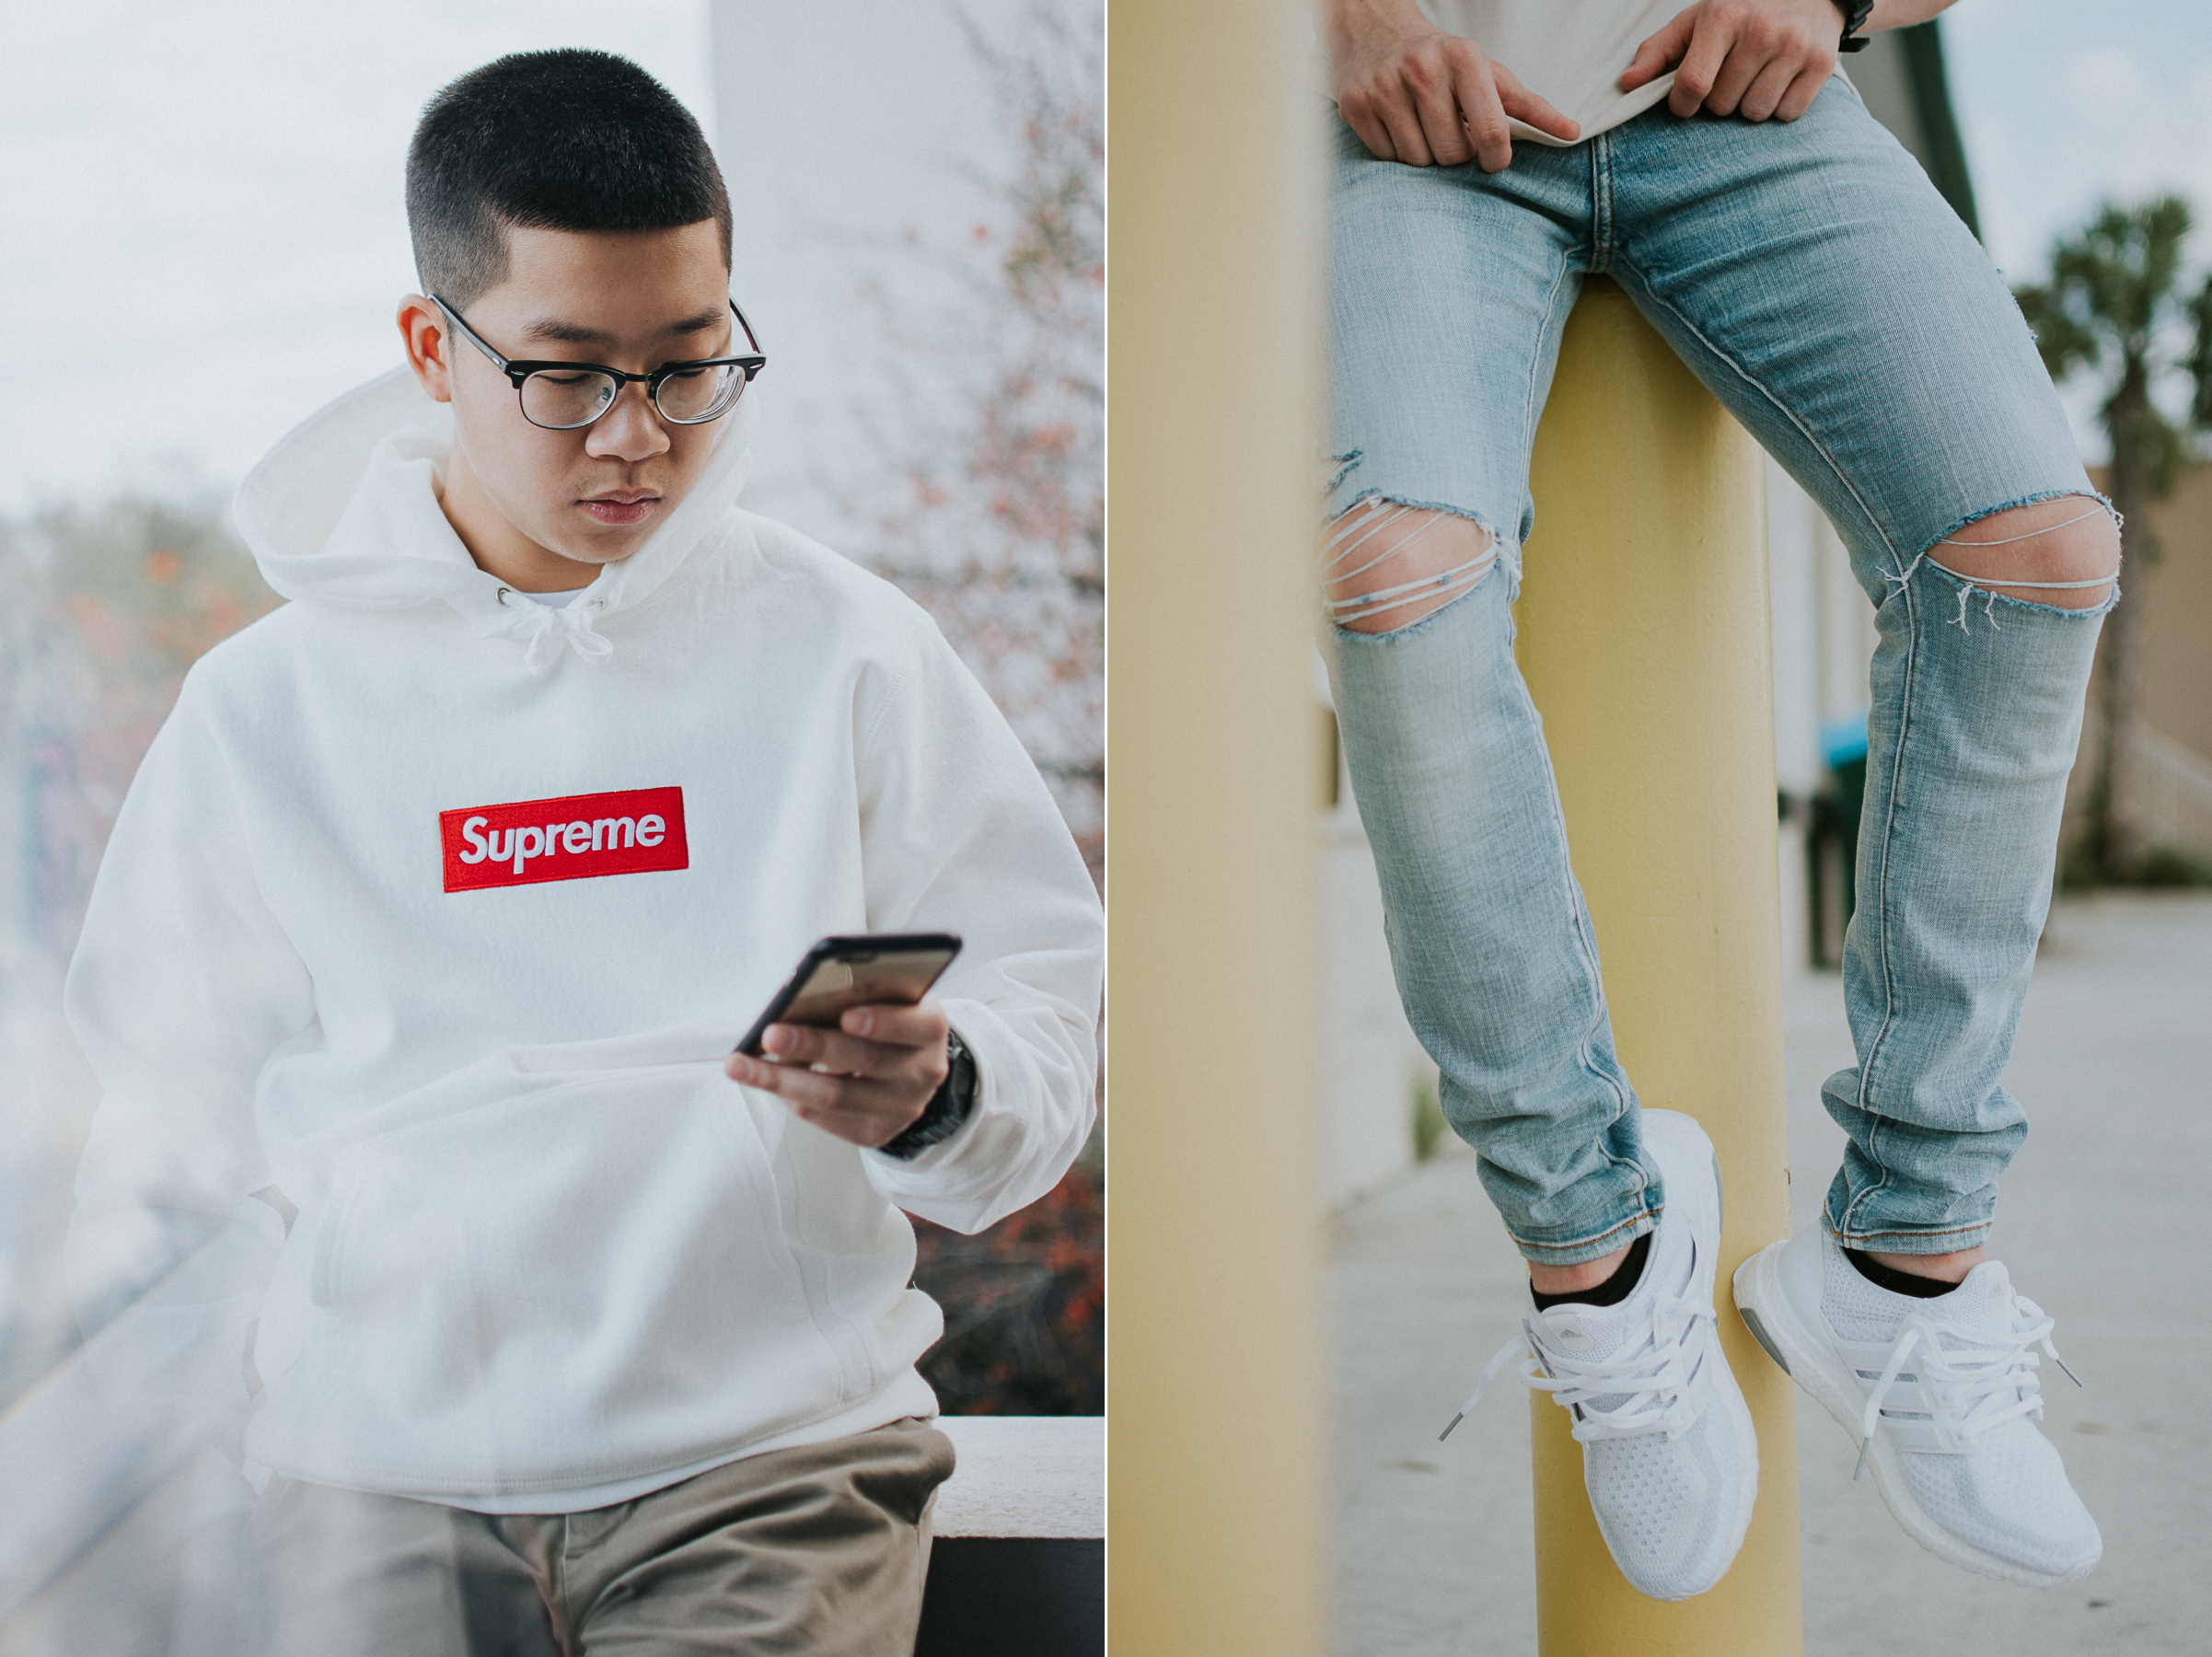 Supreme hoodie and all white Adidas Ultra Boosts